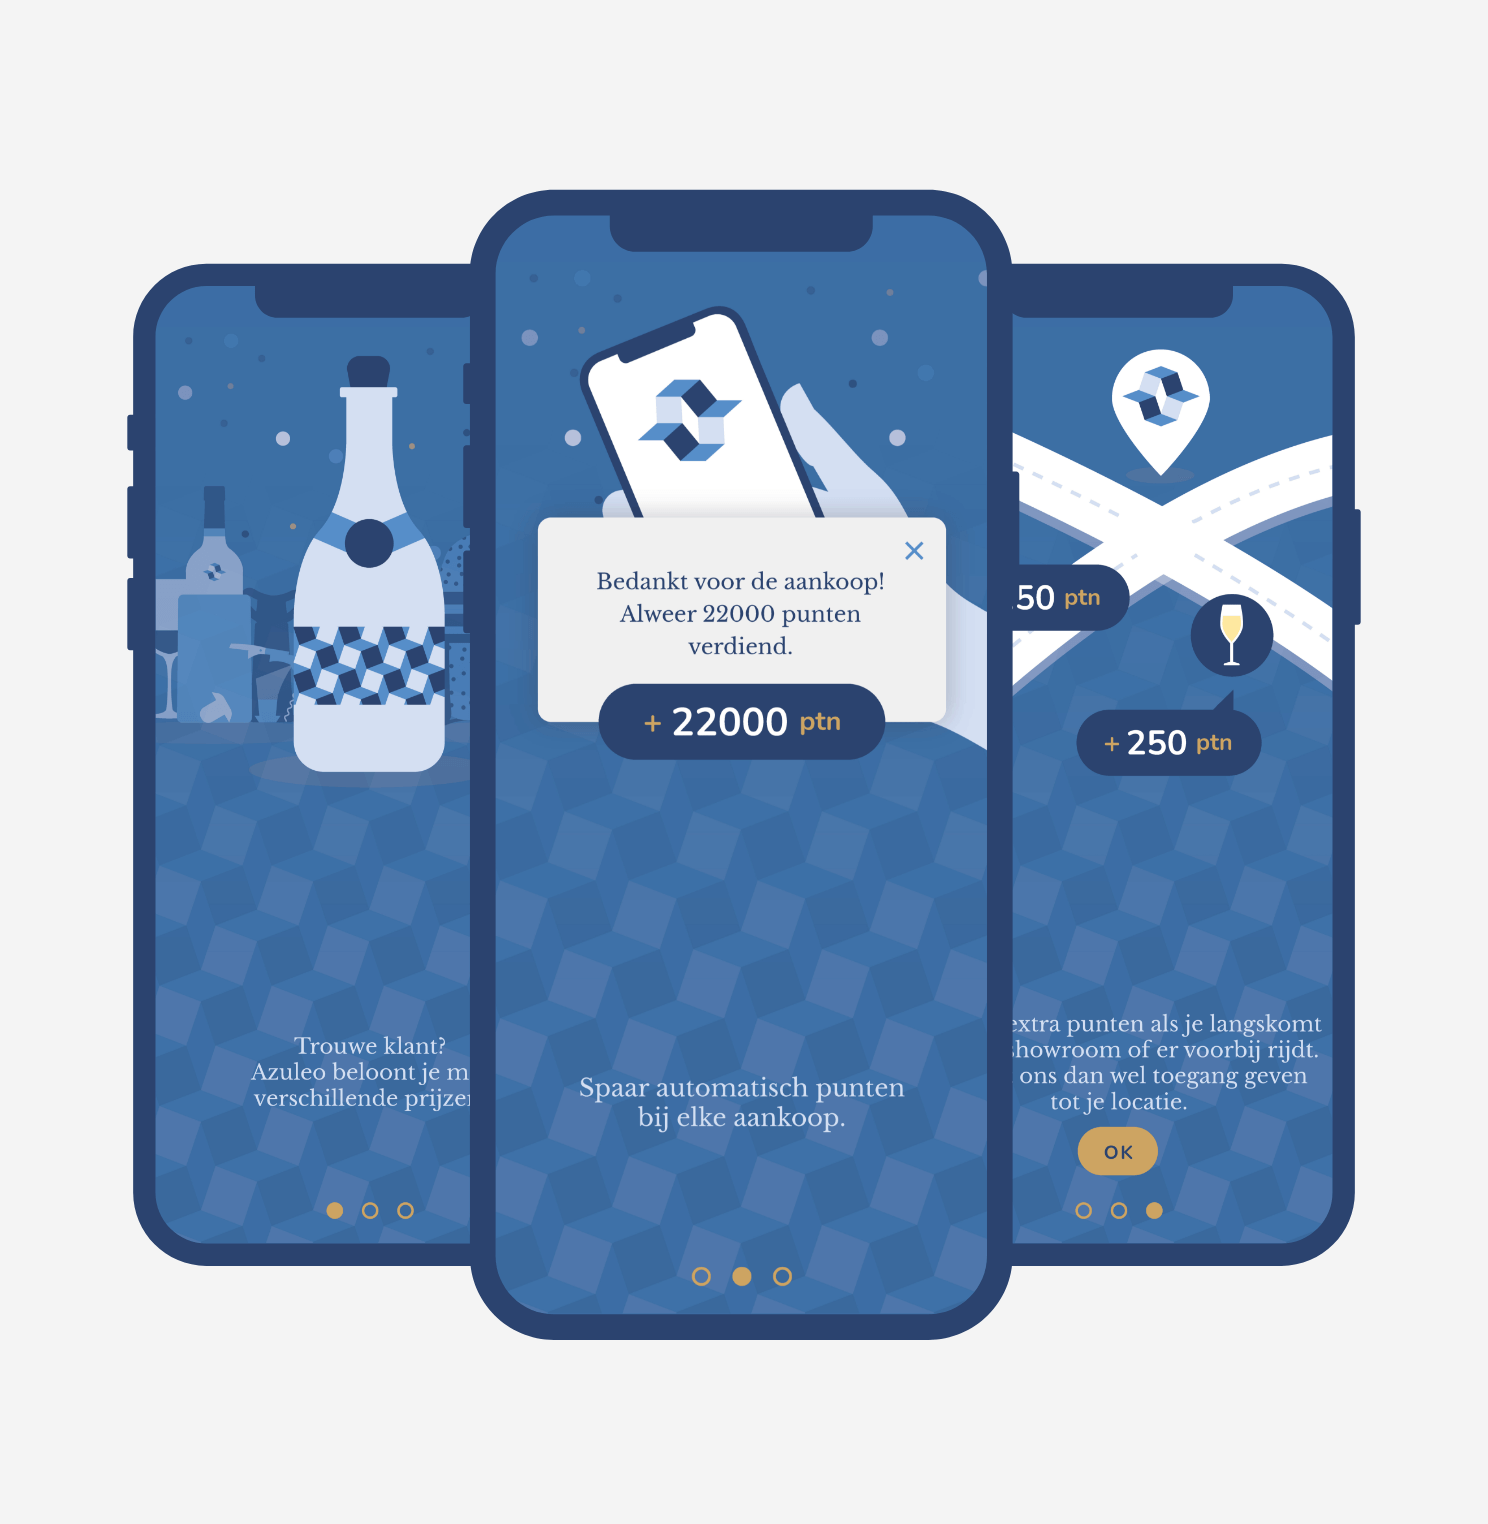 Detailed onboarding artwork for the Steylaerts app built by this might work